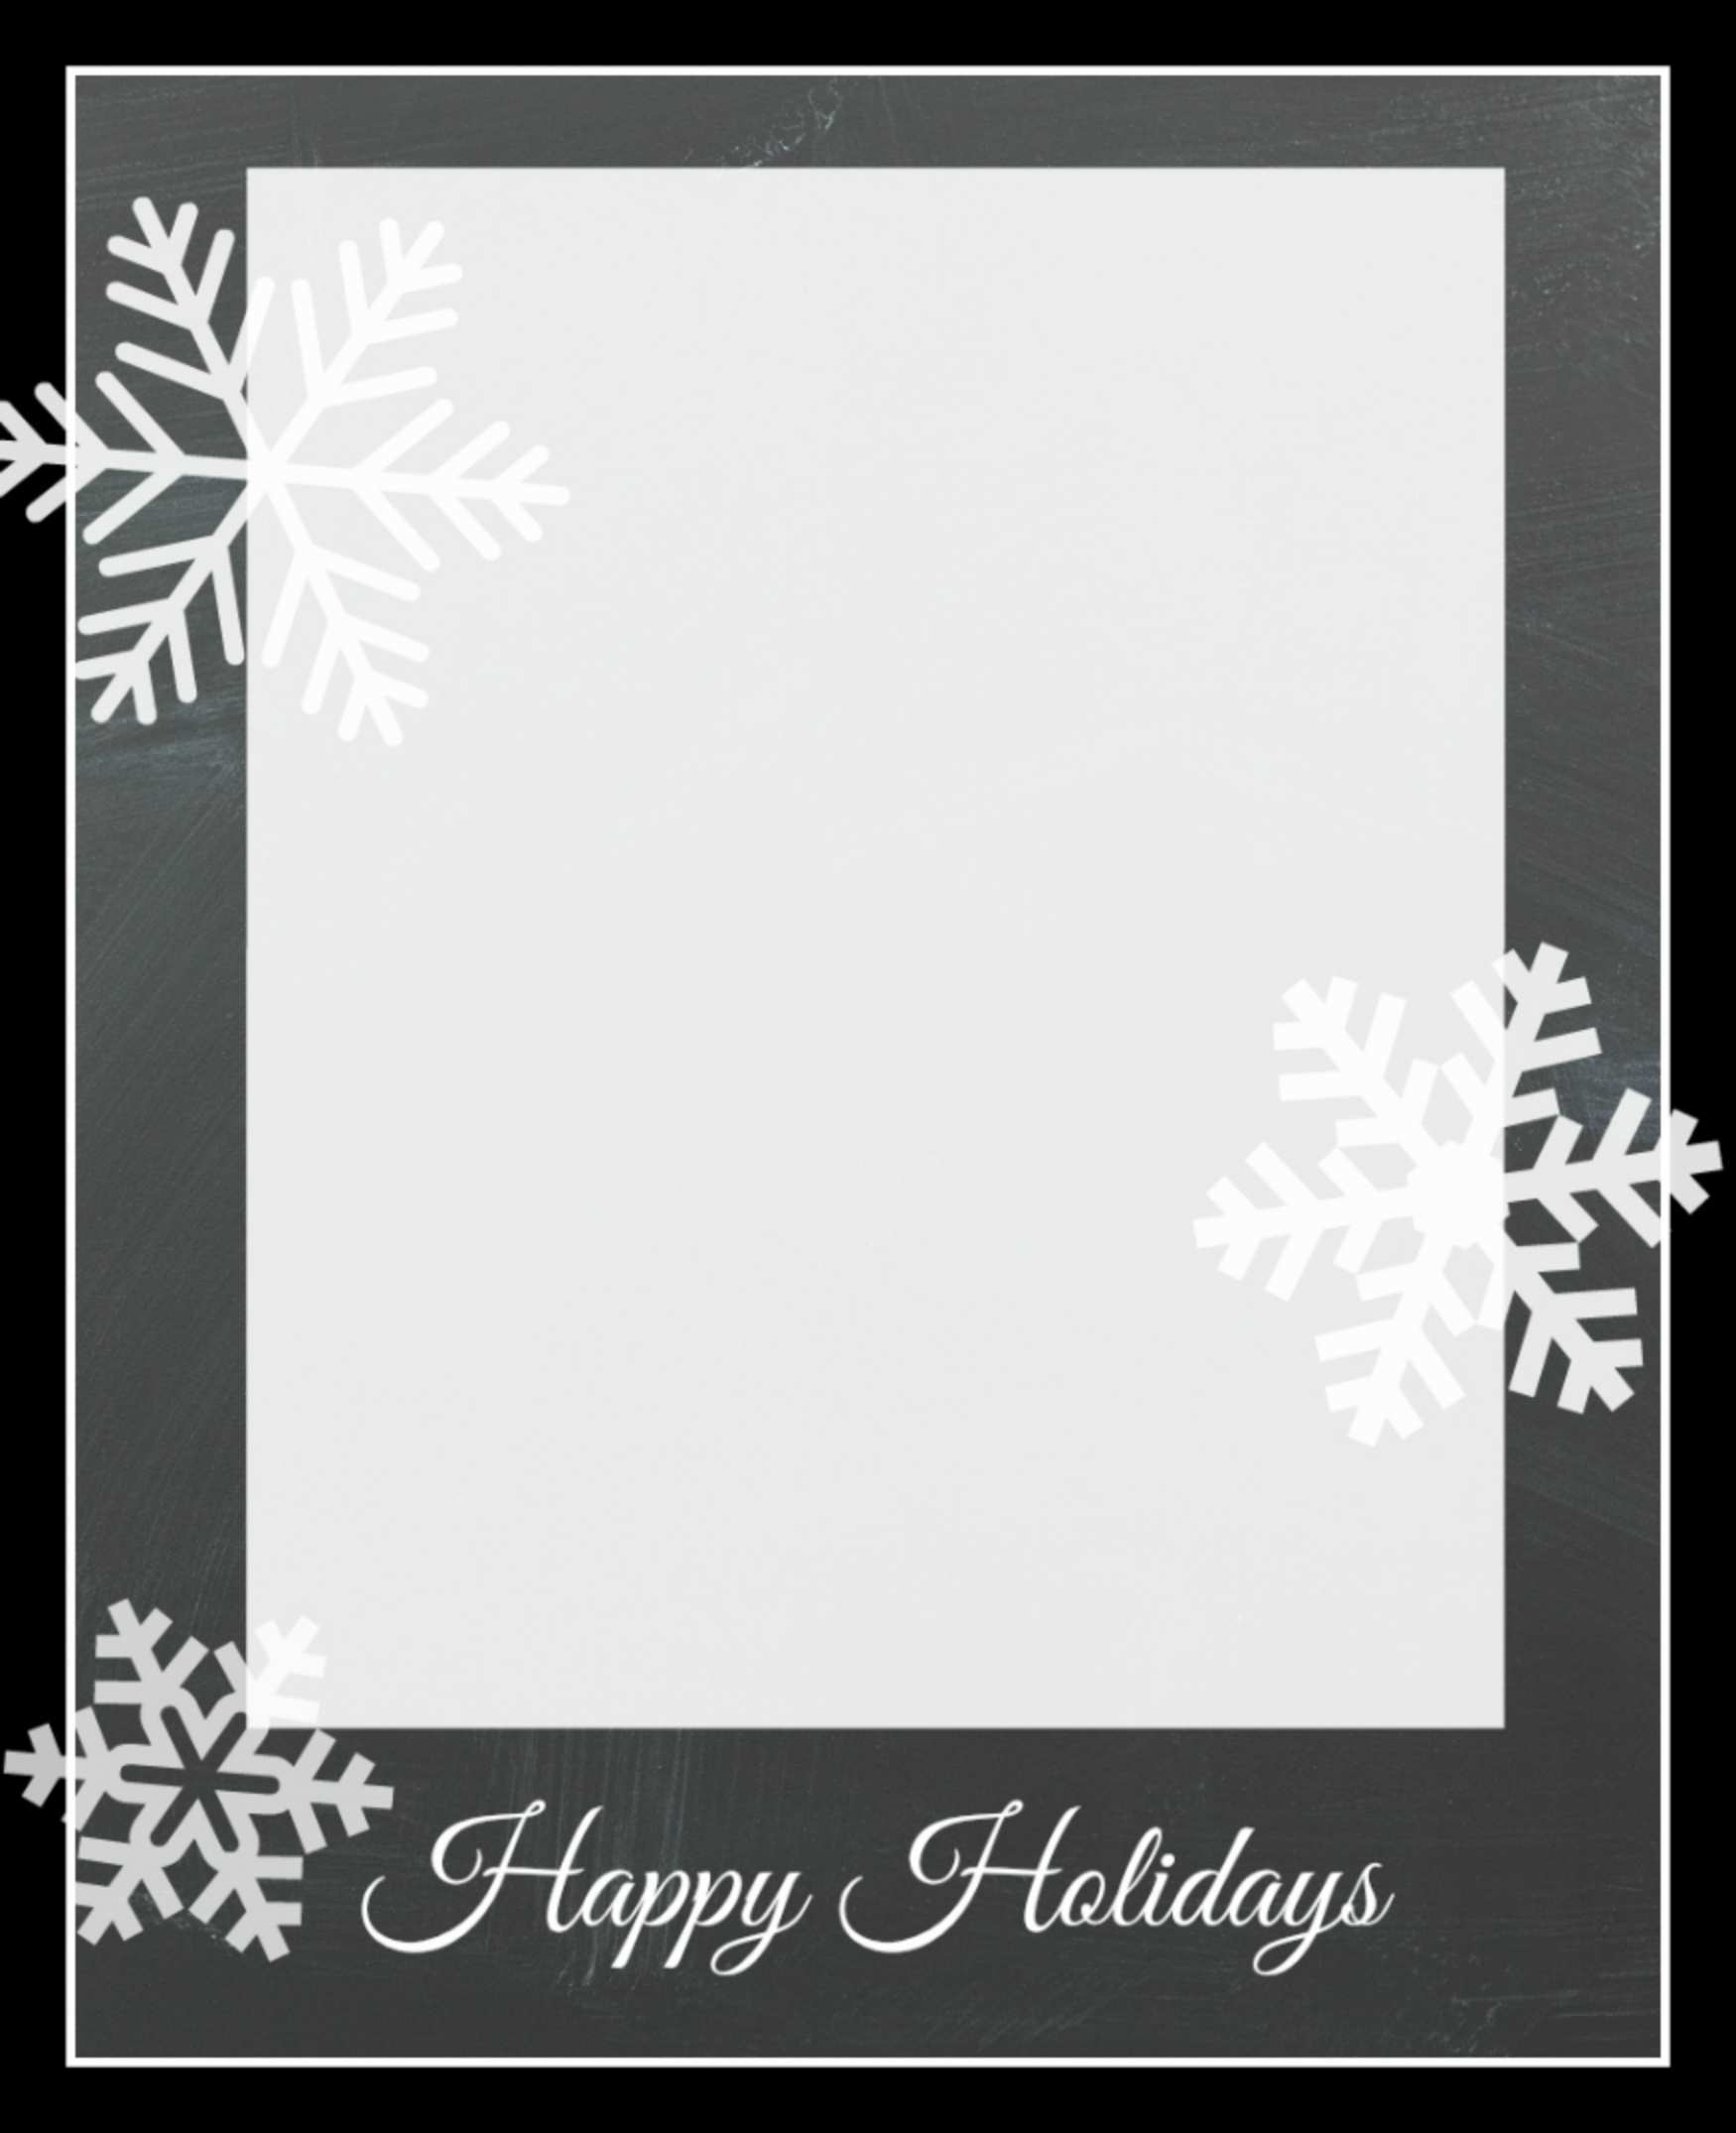 12 Best Christmas Card Templates Free For Free for Christmas Card Templates Free